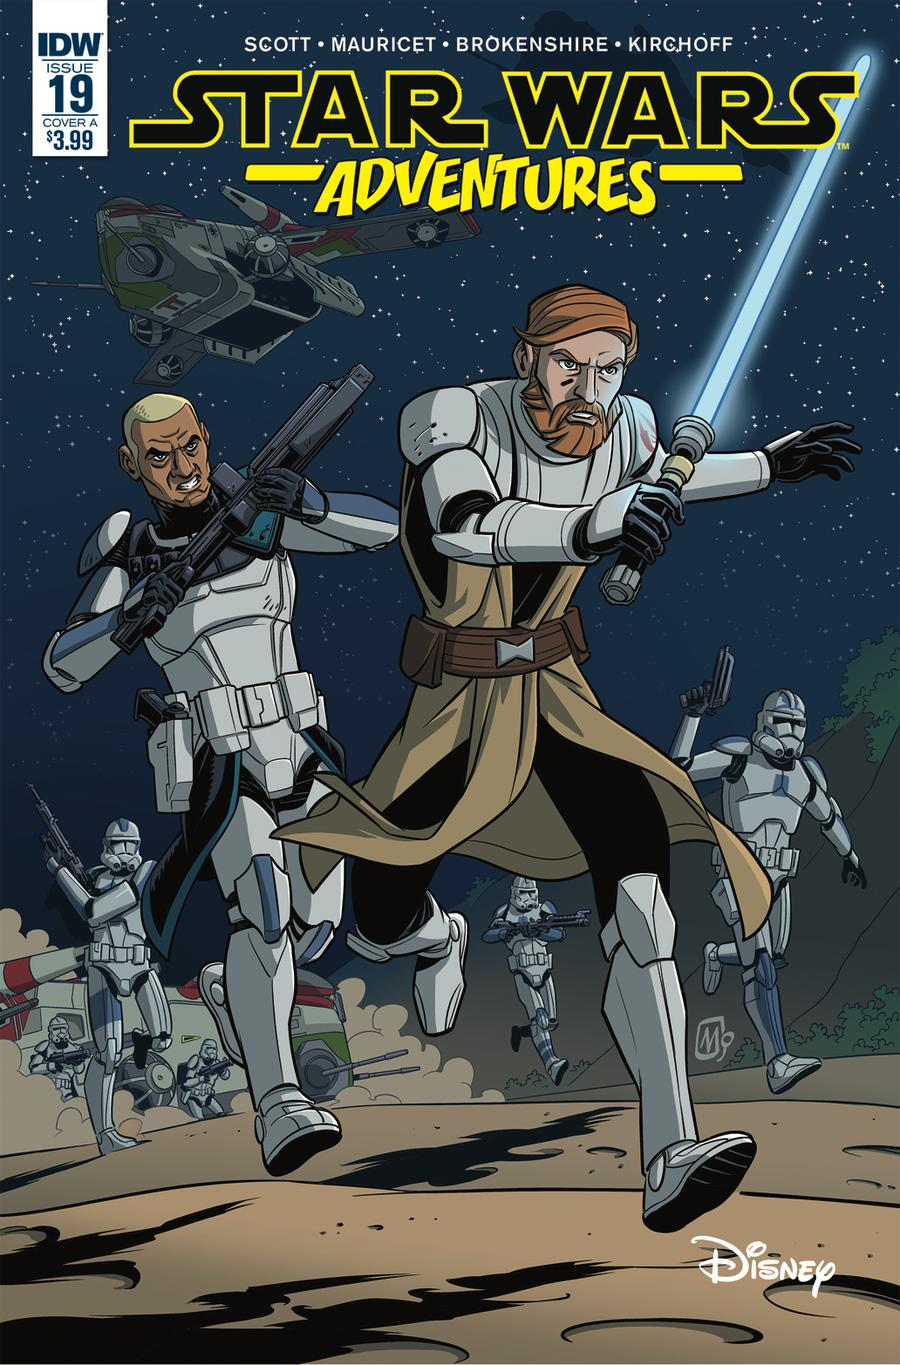 Star Wars Adventures #19 Cover A Regular Mauricet Cover